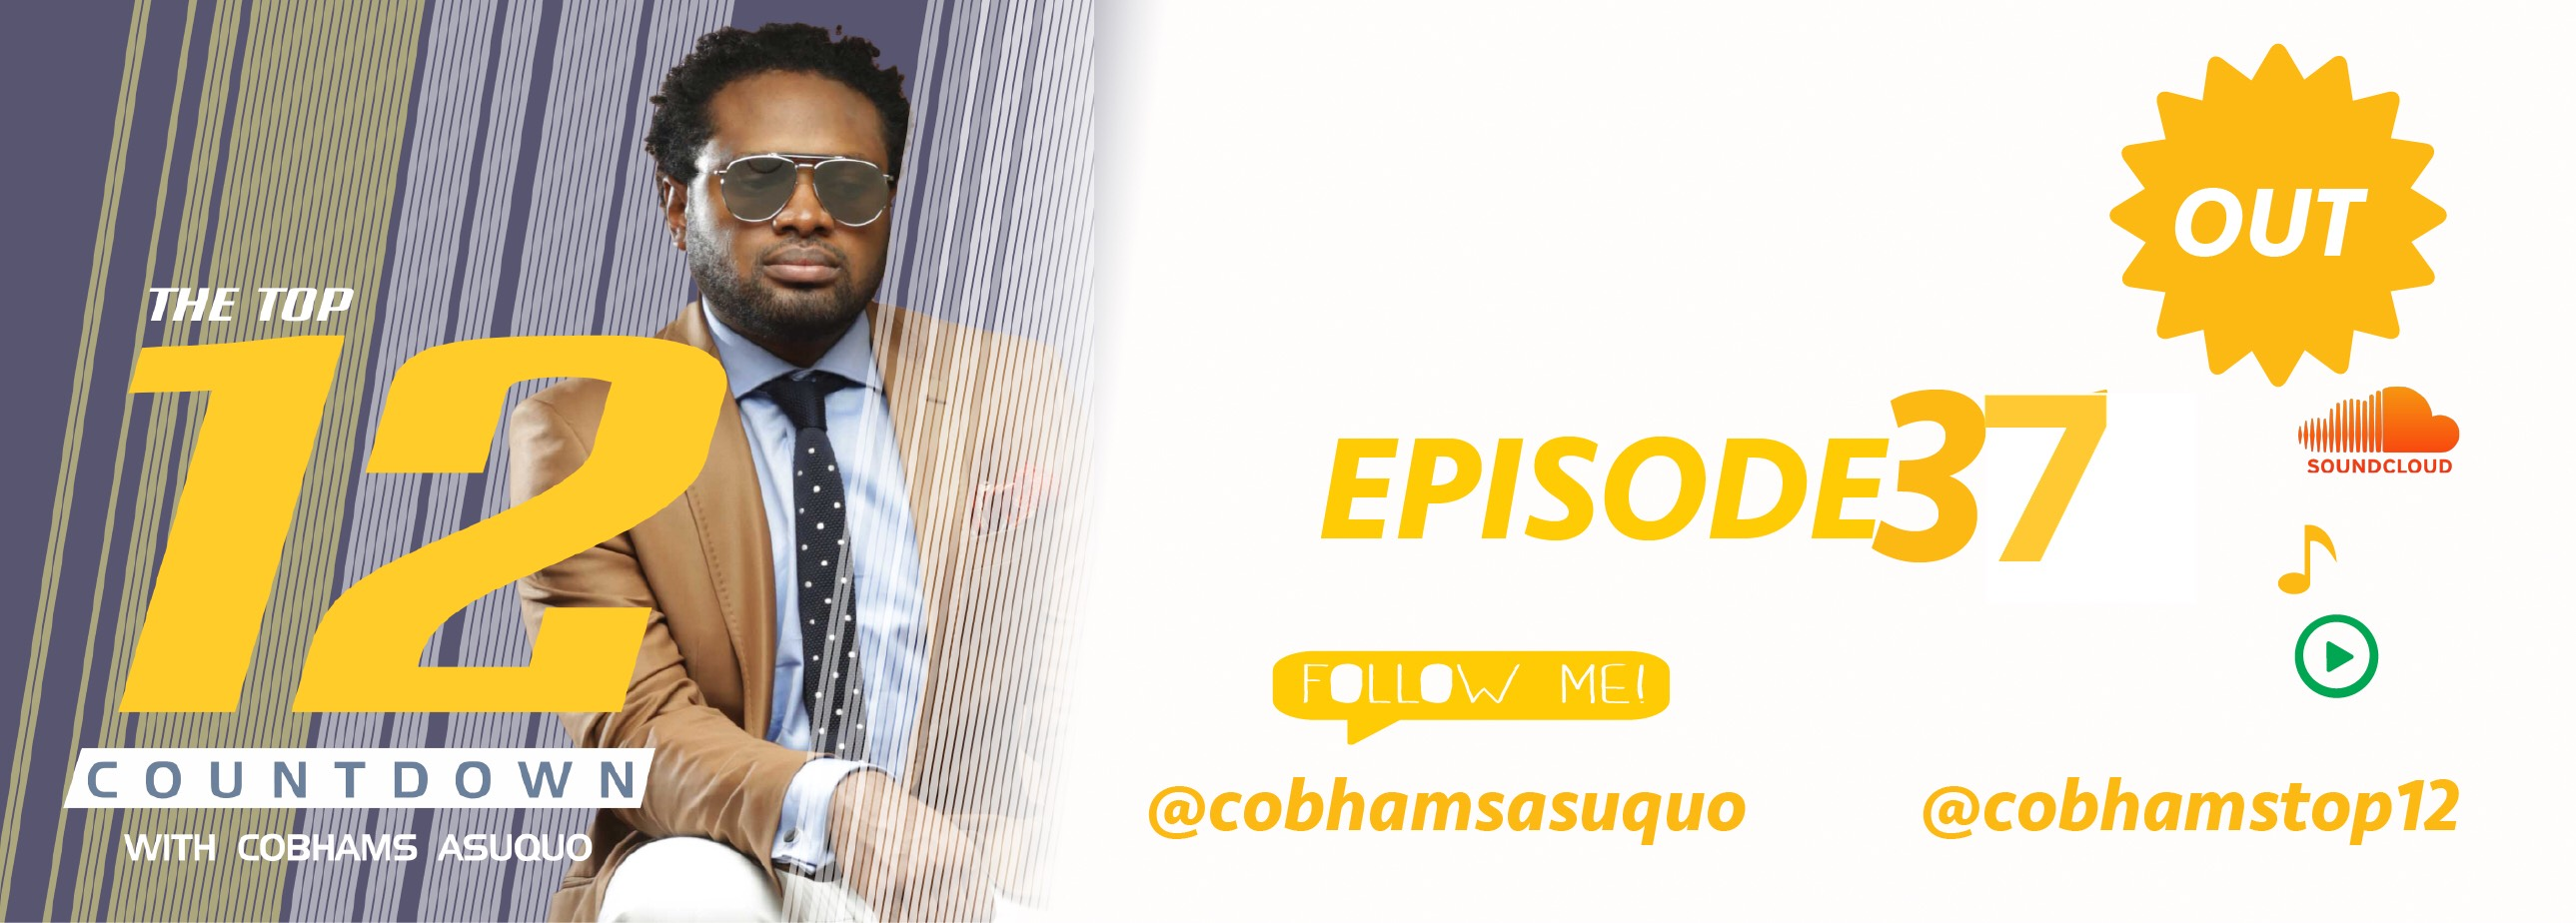 The Top 12 Countdown With Cobhams Asuquo – Ep 37